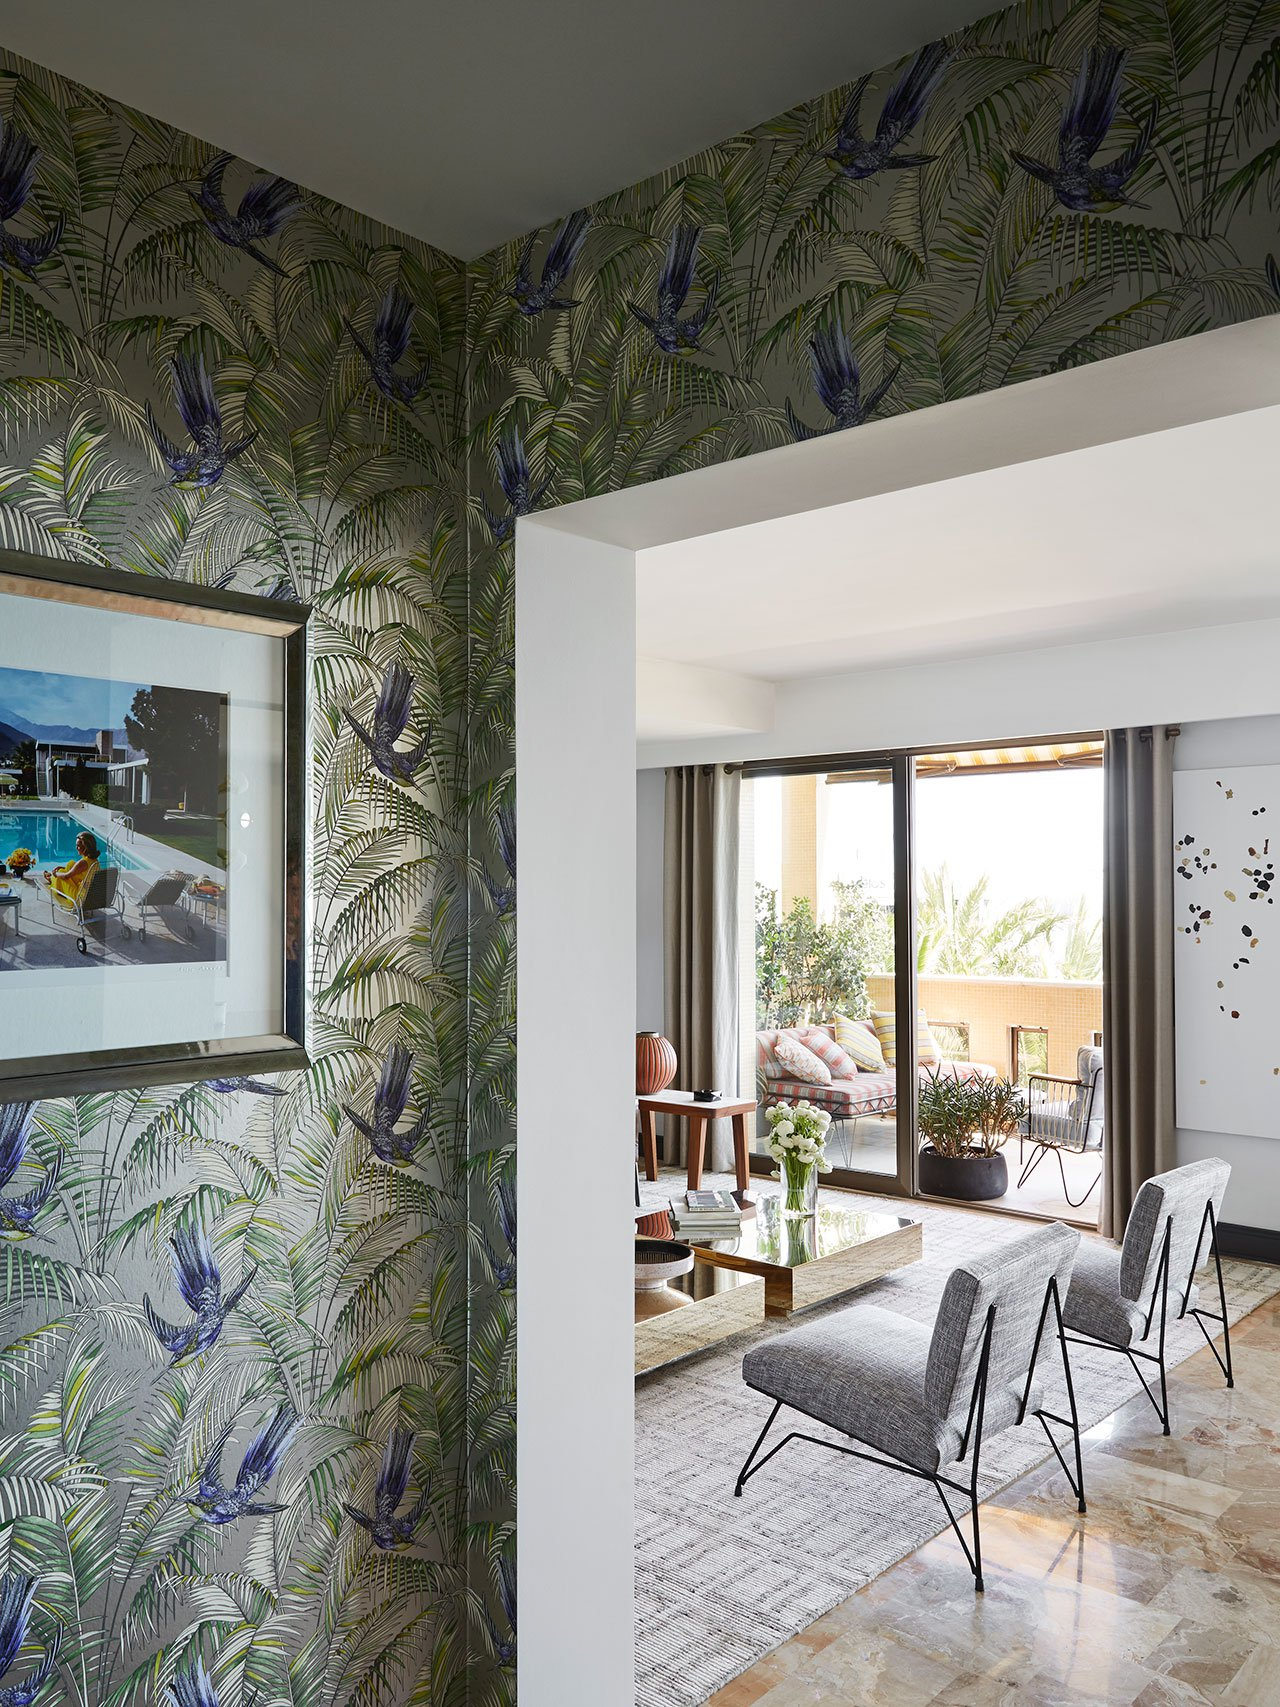 Timeless Luxury Apartment in Monaco Filled with Mid-Century Lighting 1 mid-century lighting Timeless Luxury Apartment in Monaco Filled with Mid-Century Lighting Timeless Luxury Apartment in Monaco Filled with Mid Century Lighting 1